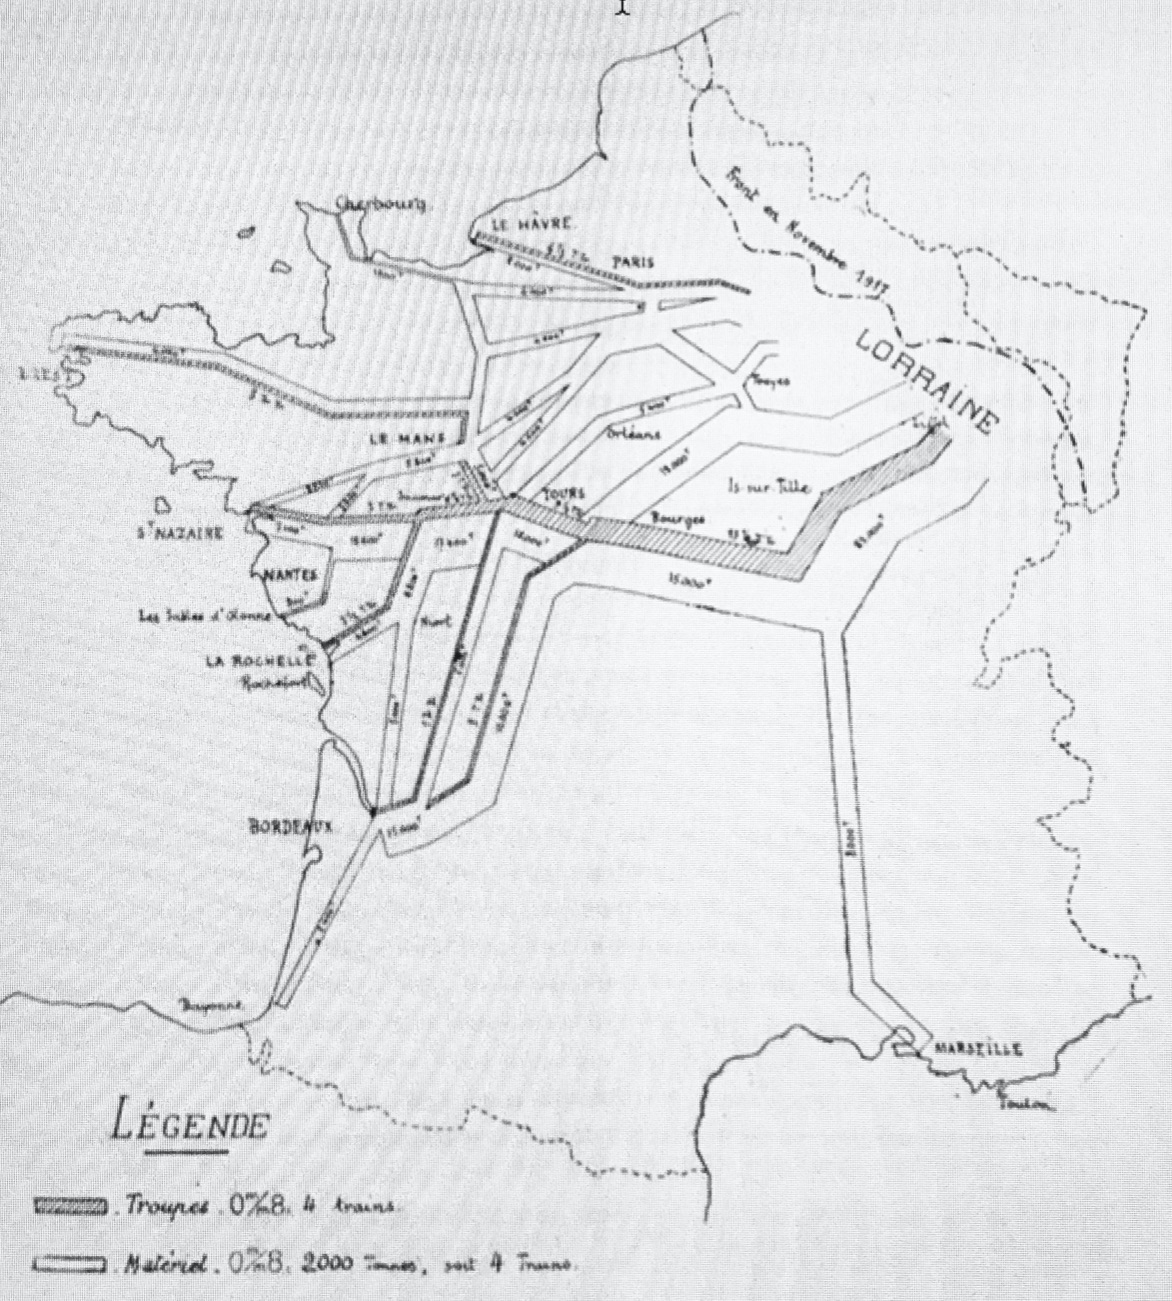 Lignes de communications de Pershing.